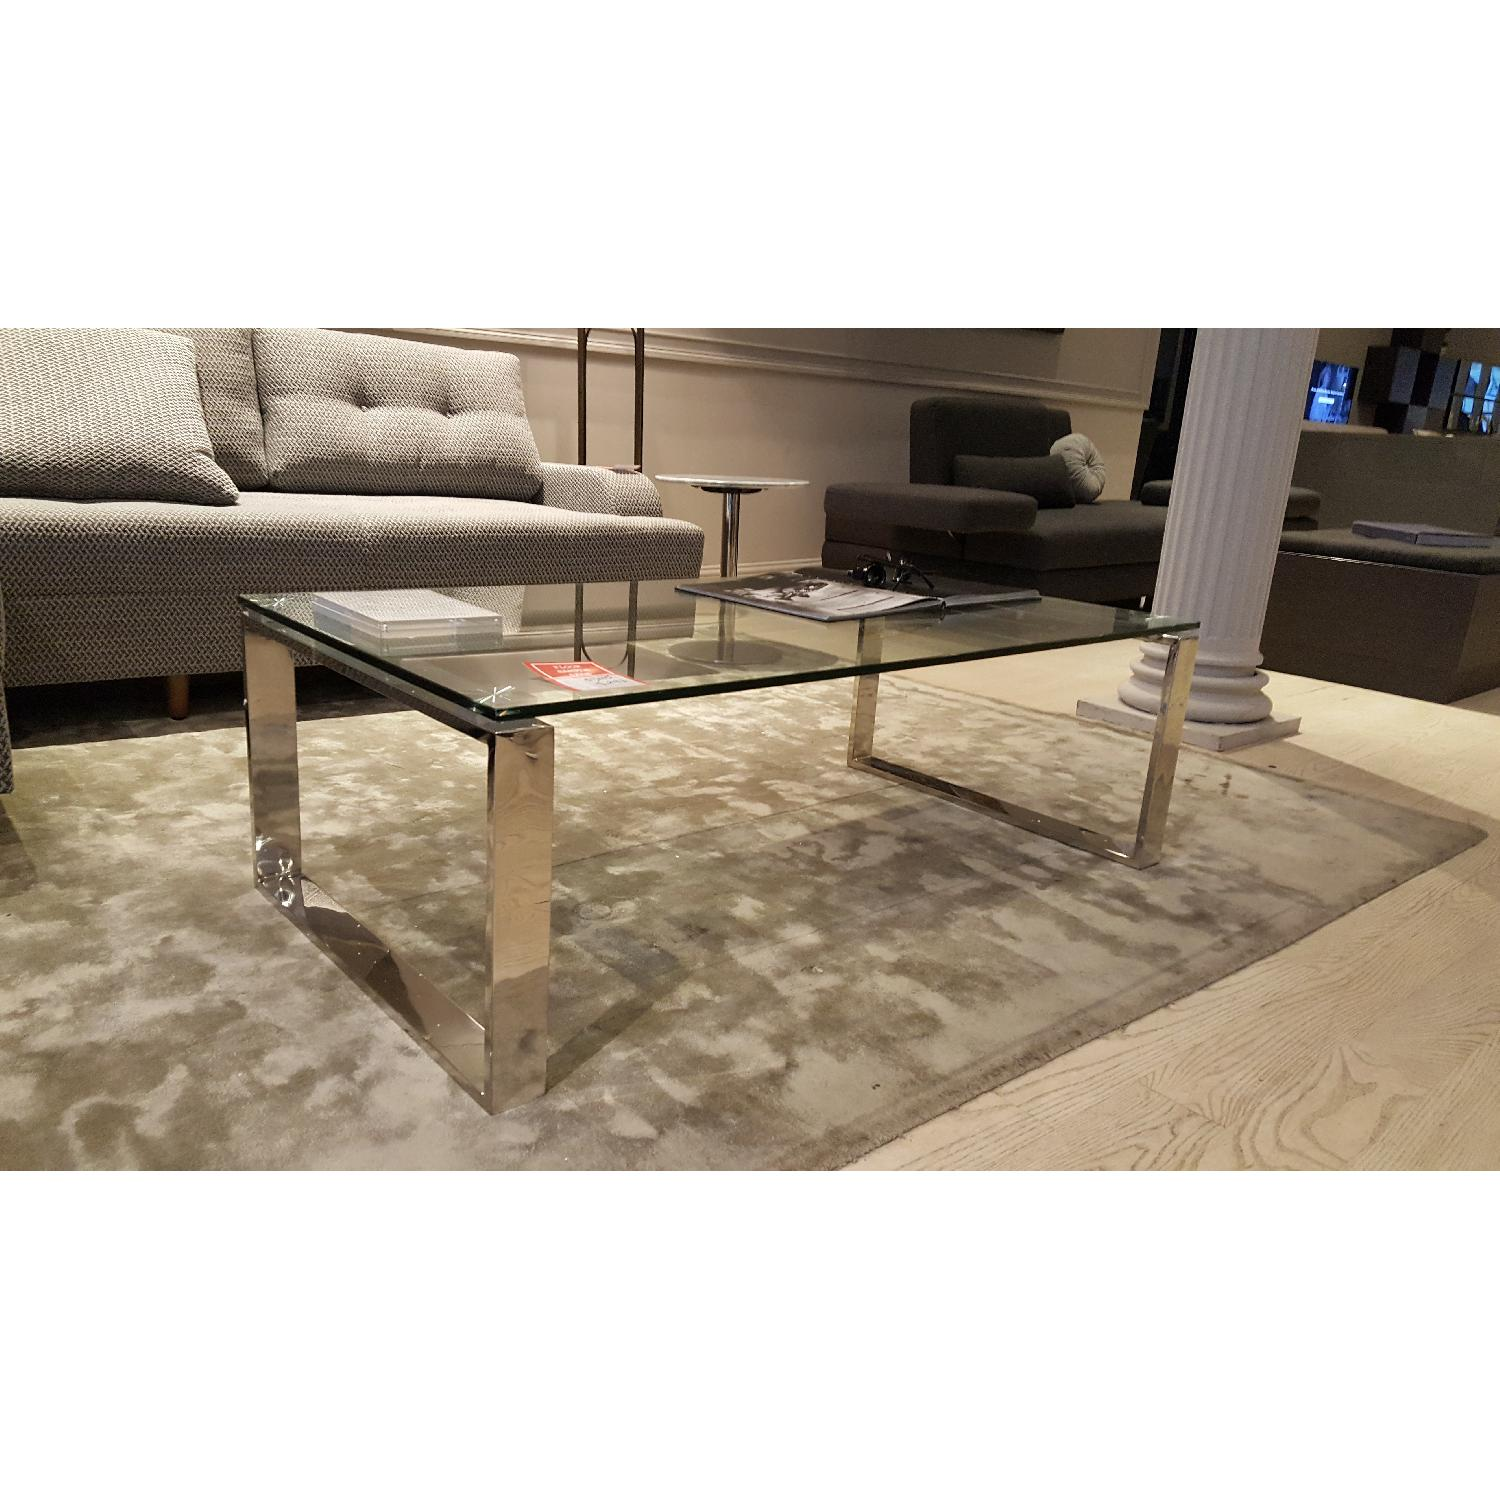 Lazzoni Glass Coffee Table - image-1